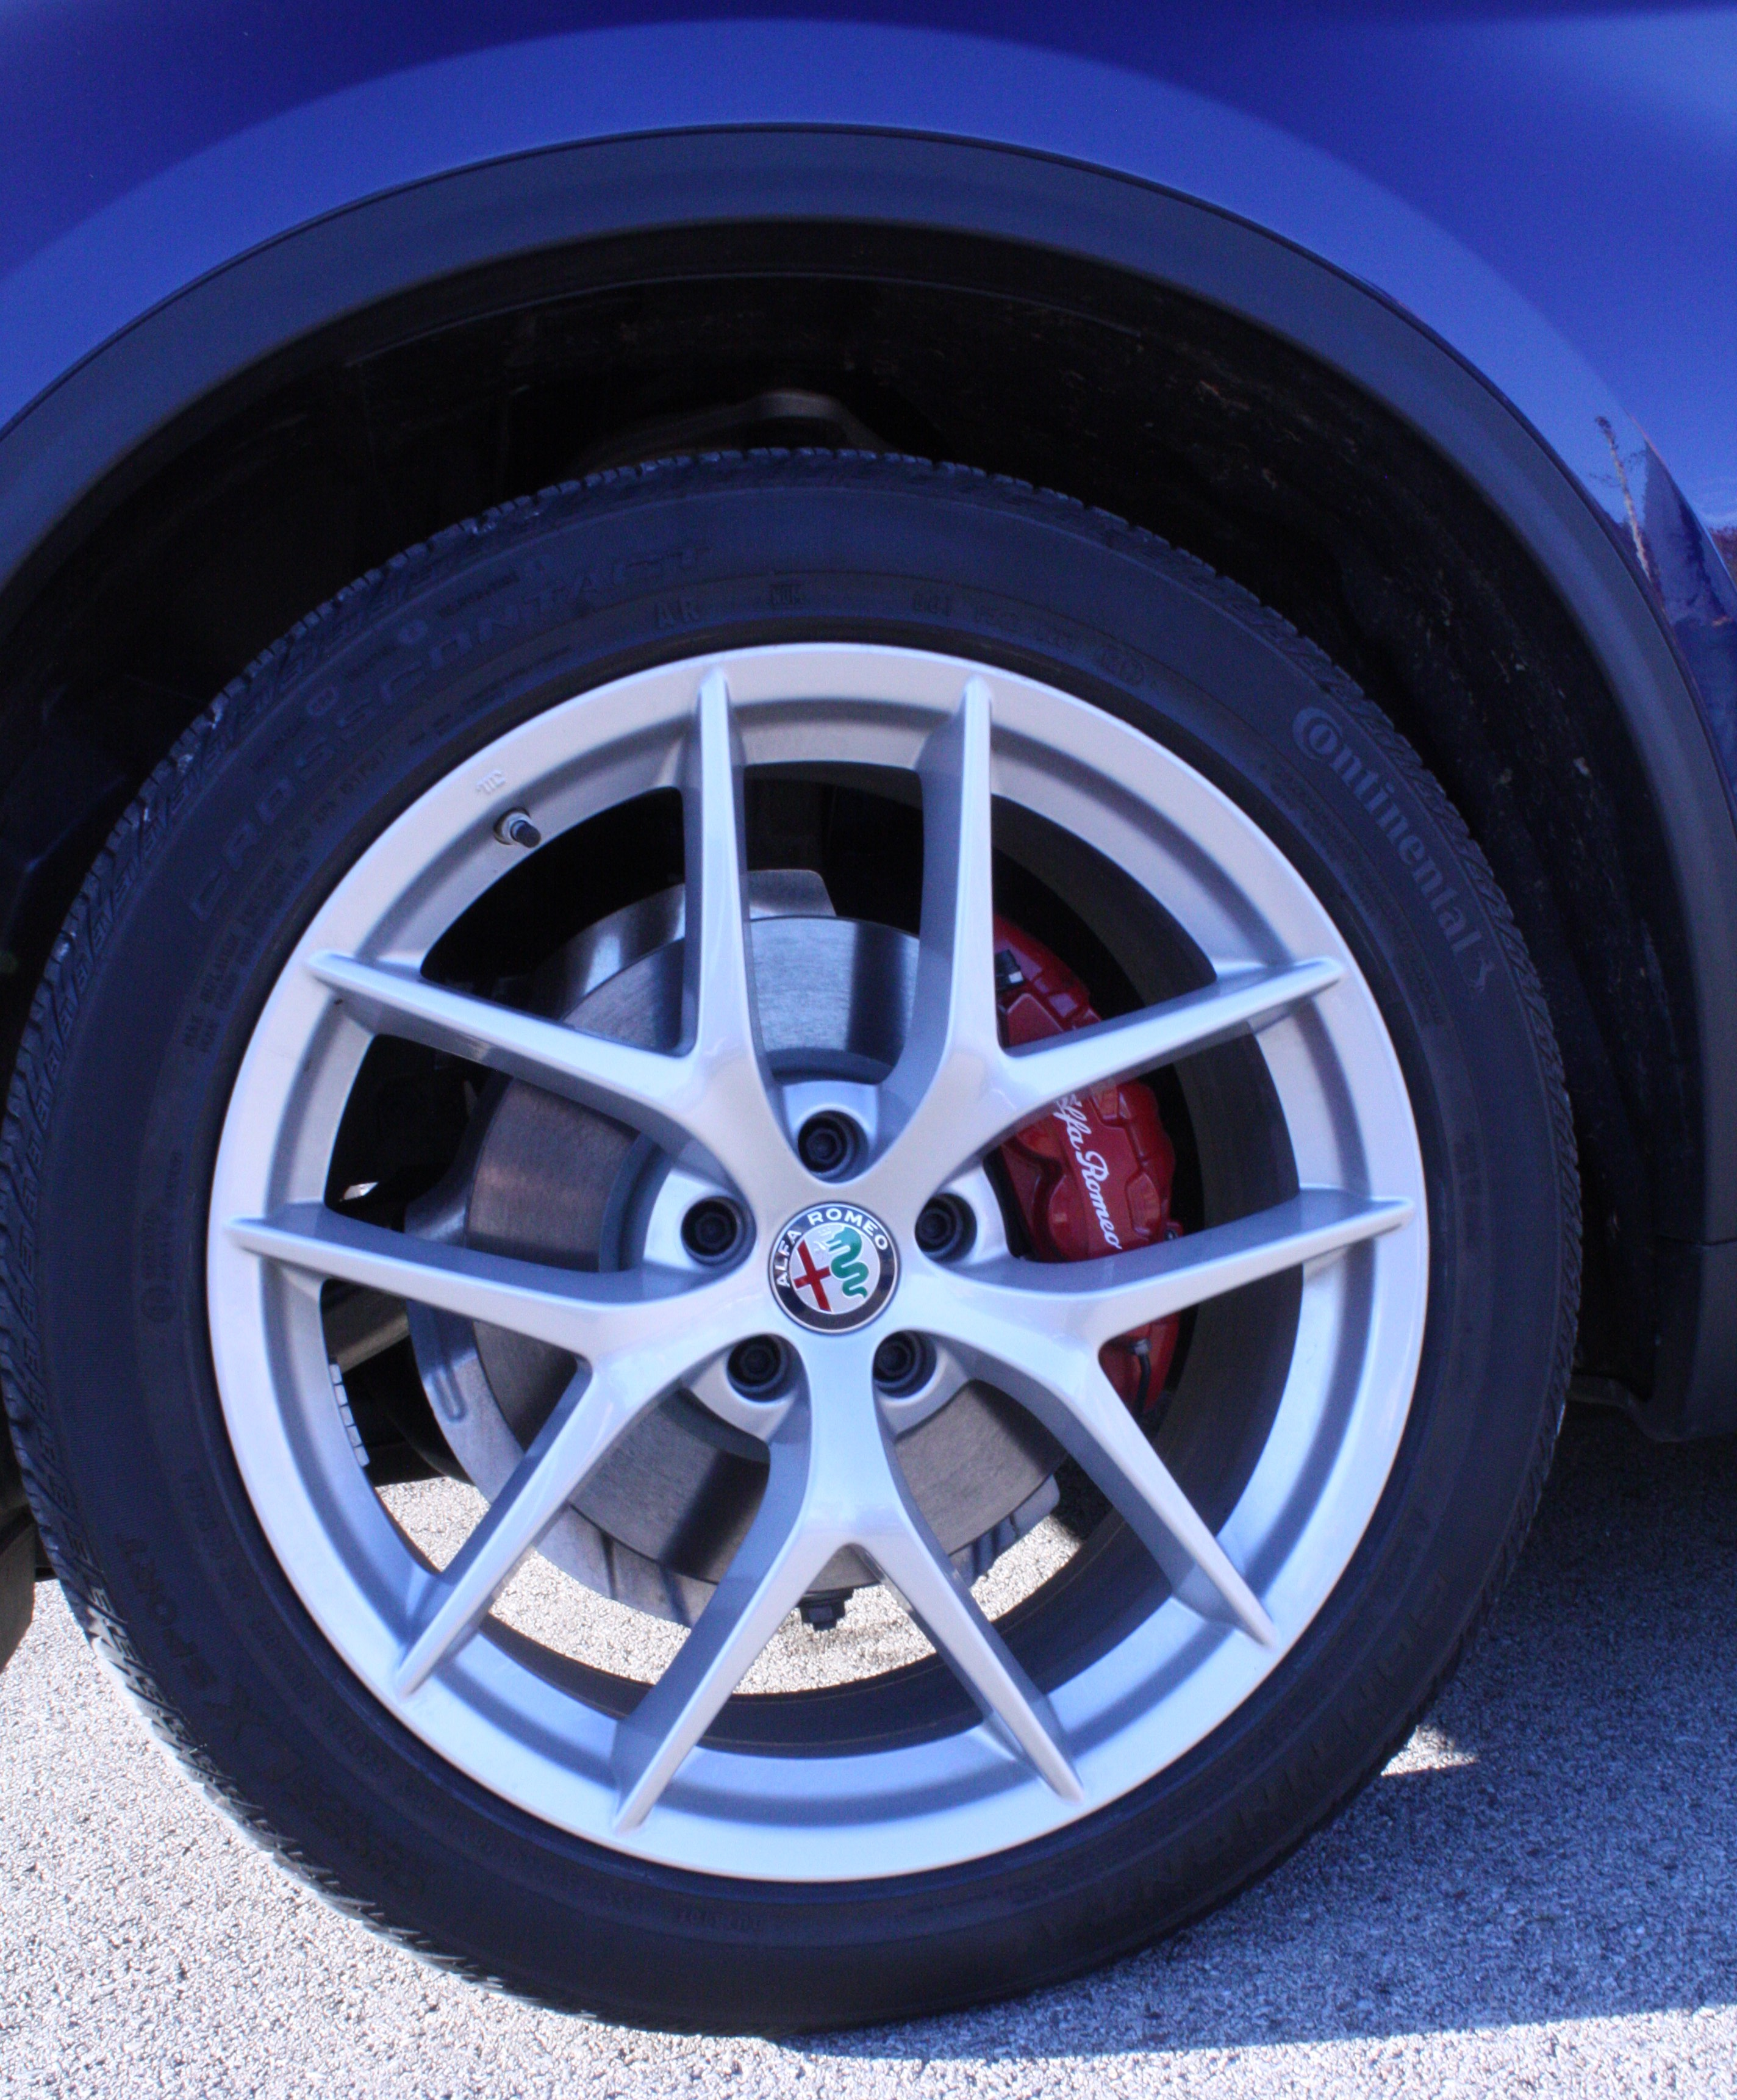 Alfa makes a statement with the wheel design and the red brake caliper.